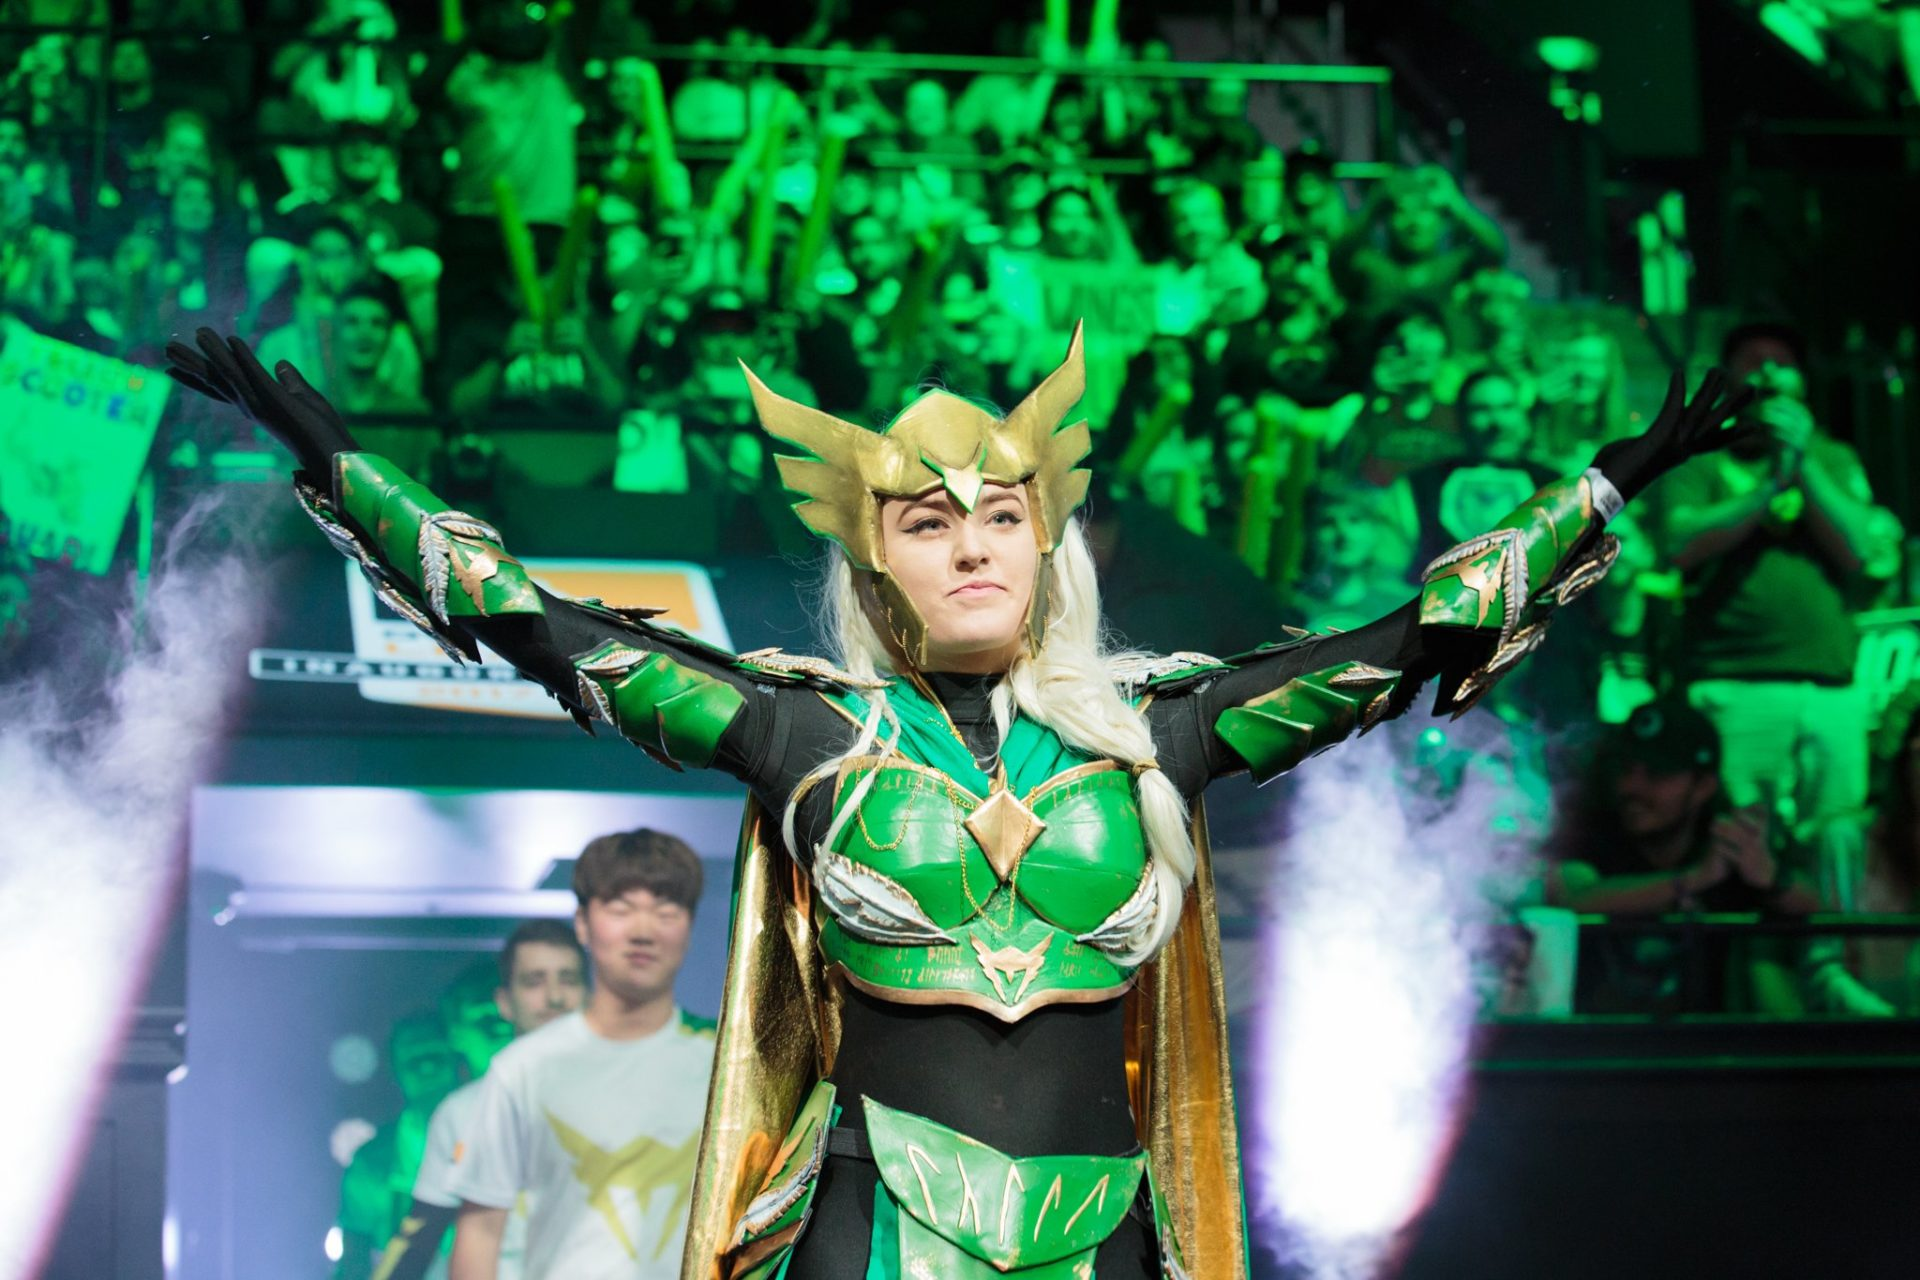 Los Angeles Valiant is expected to continue under new ownership if Immortals do sell.